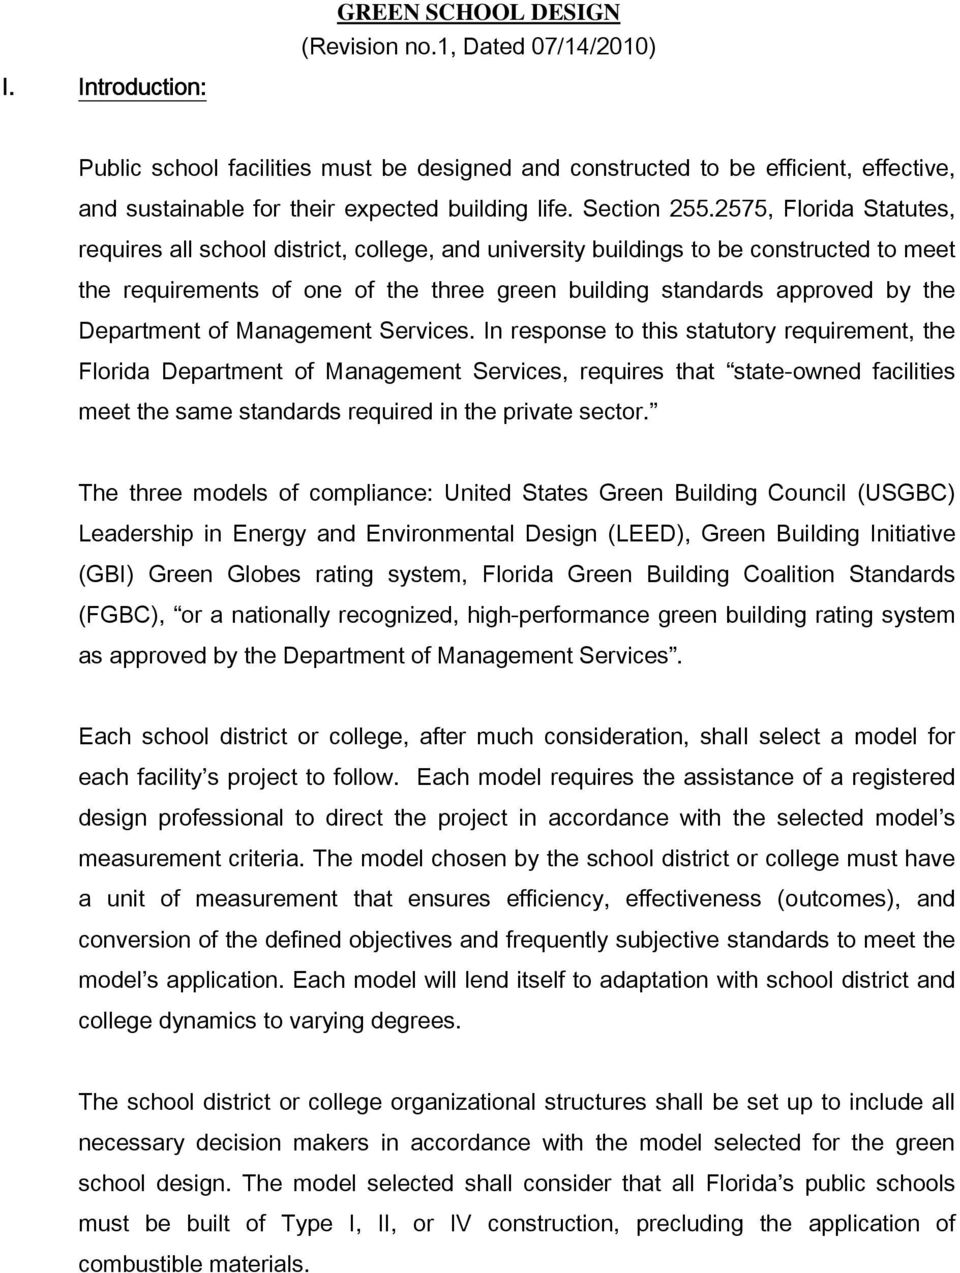 2575, Florida Statutes, requires all school district, college, and university buildings to be constructed to meet the requirements of one of the three green building standards approved by the